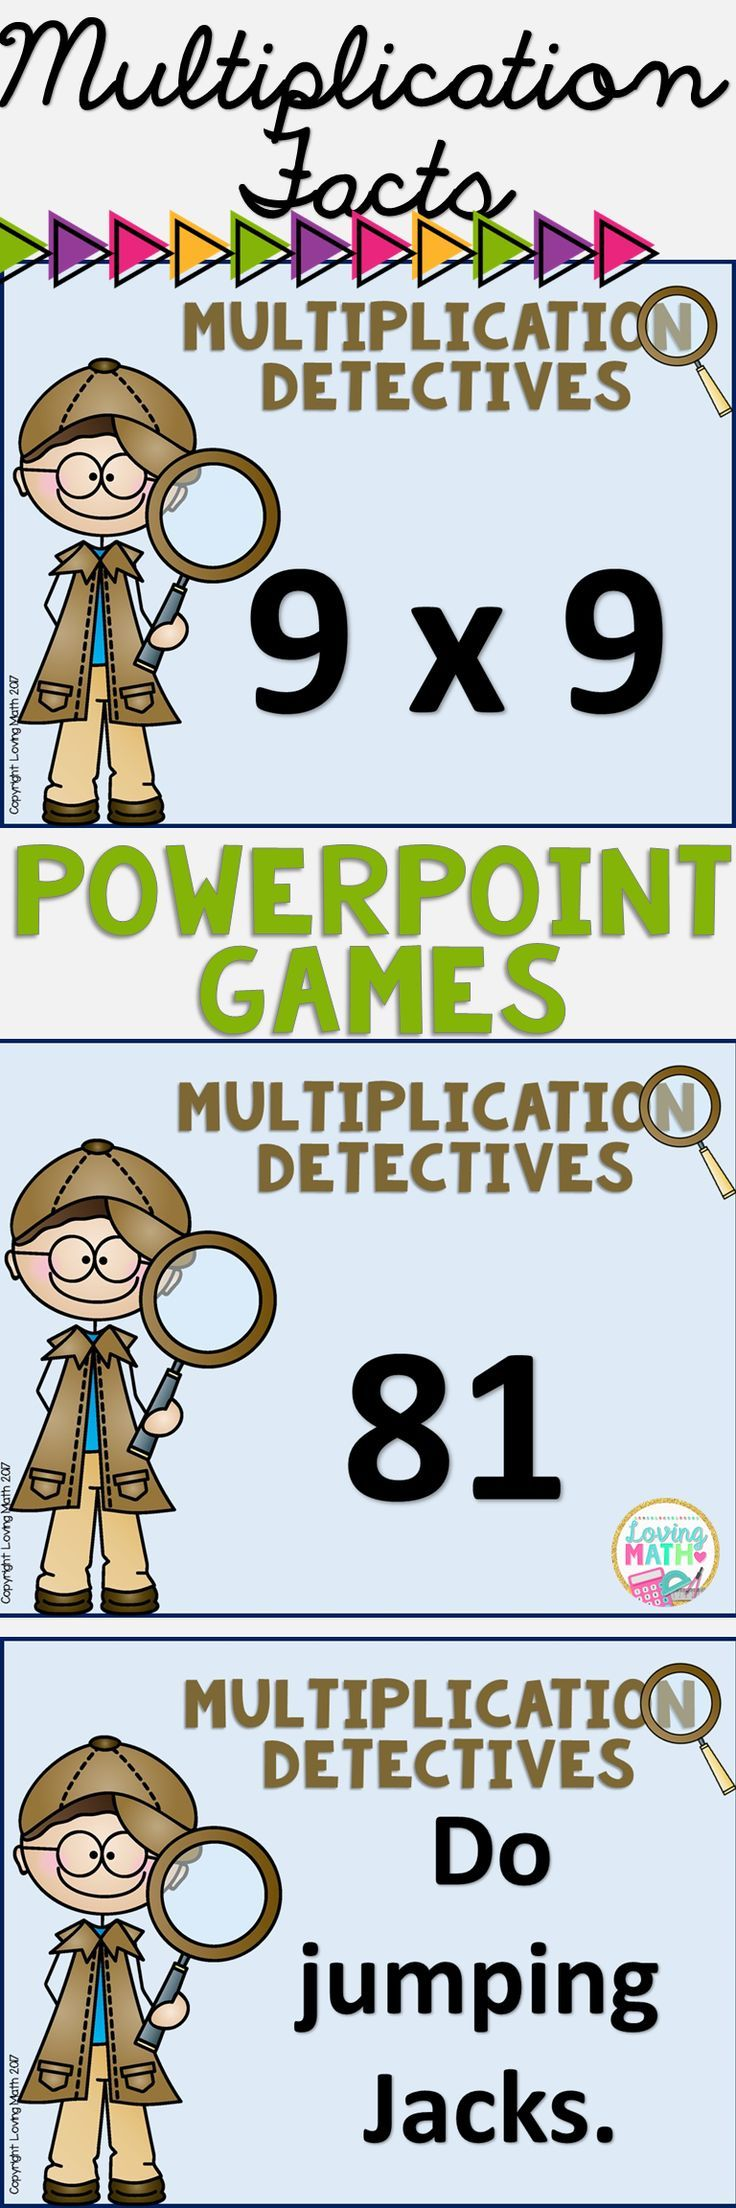 Multiplication Facts PowerPoint Games and Quizzes   Multiplication ...